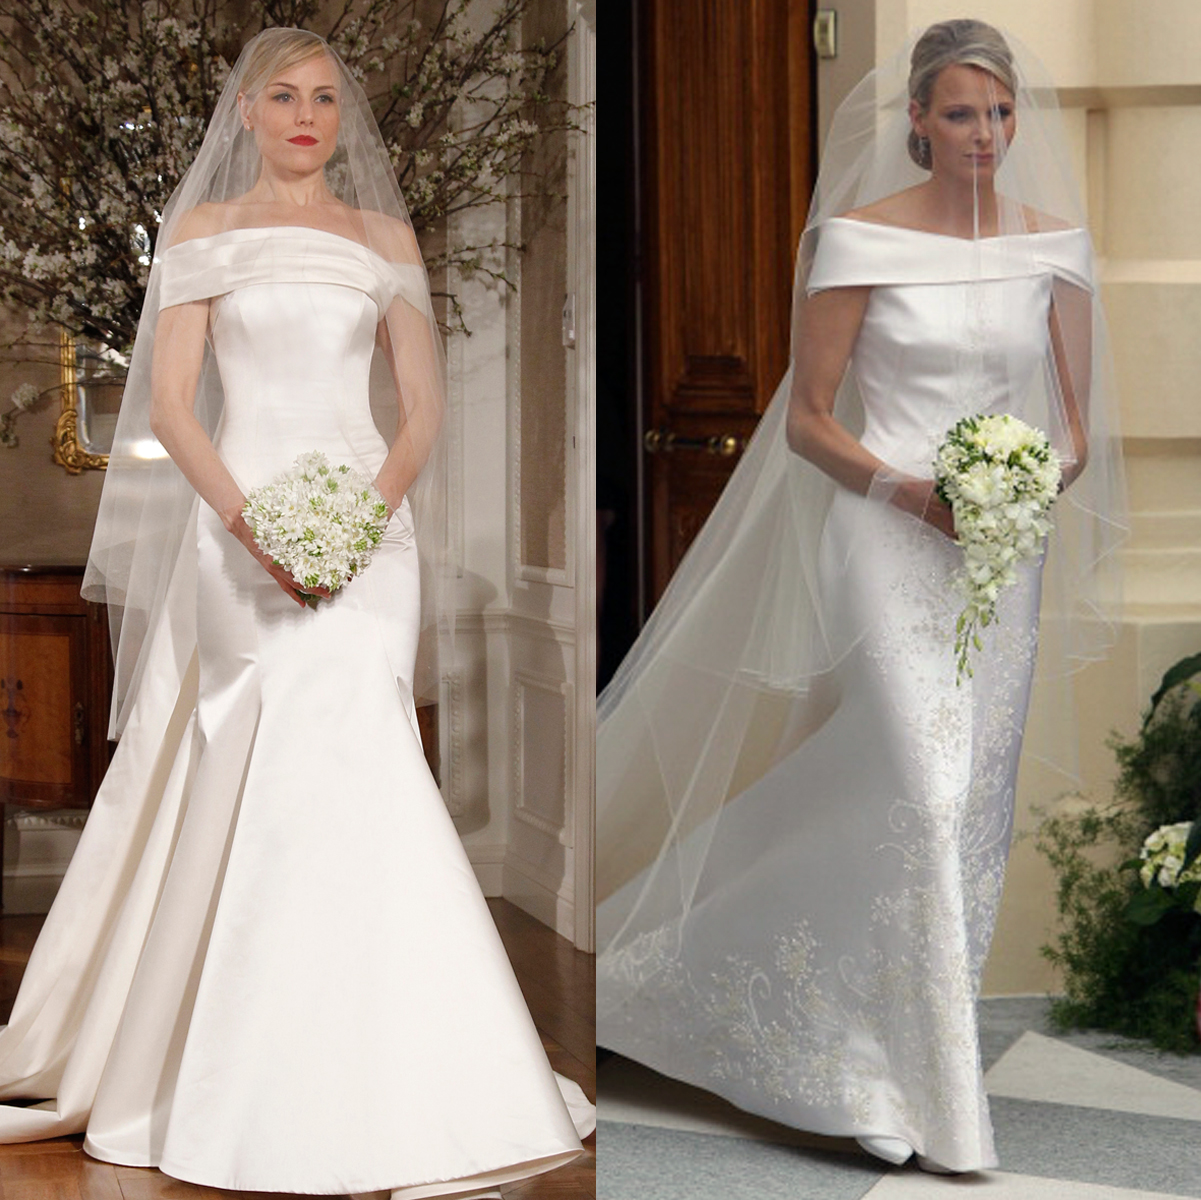 romona keveza look 242 charlene wittstock wedding dress